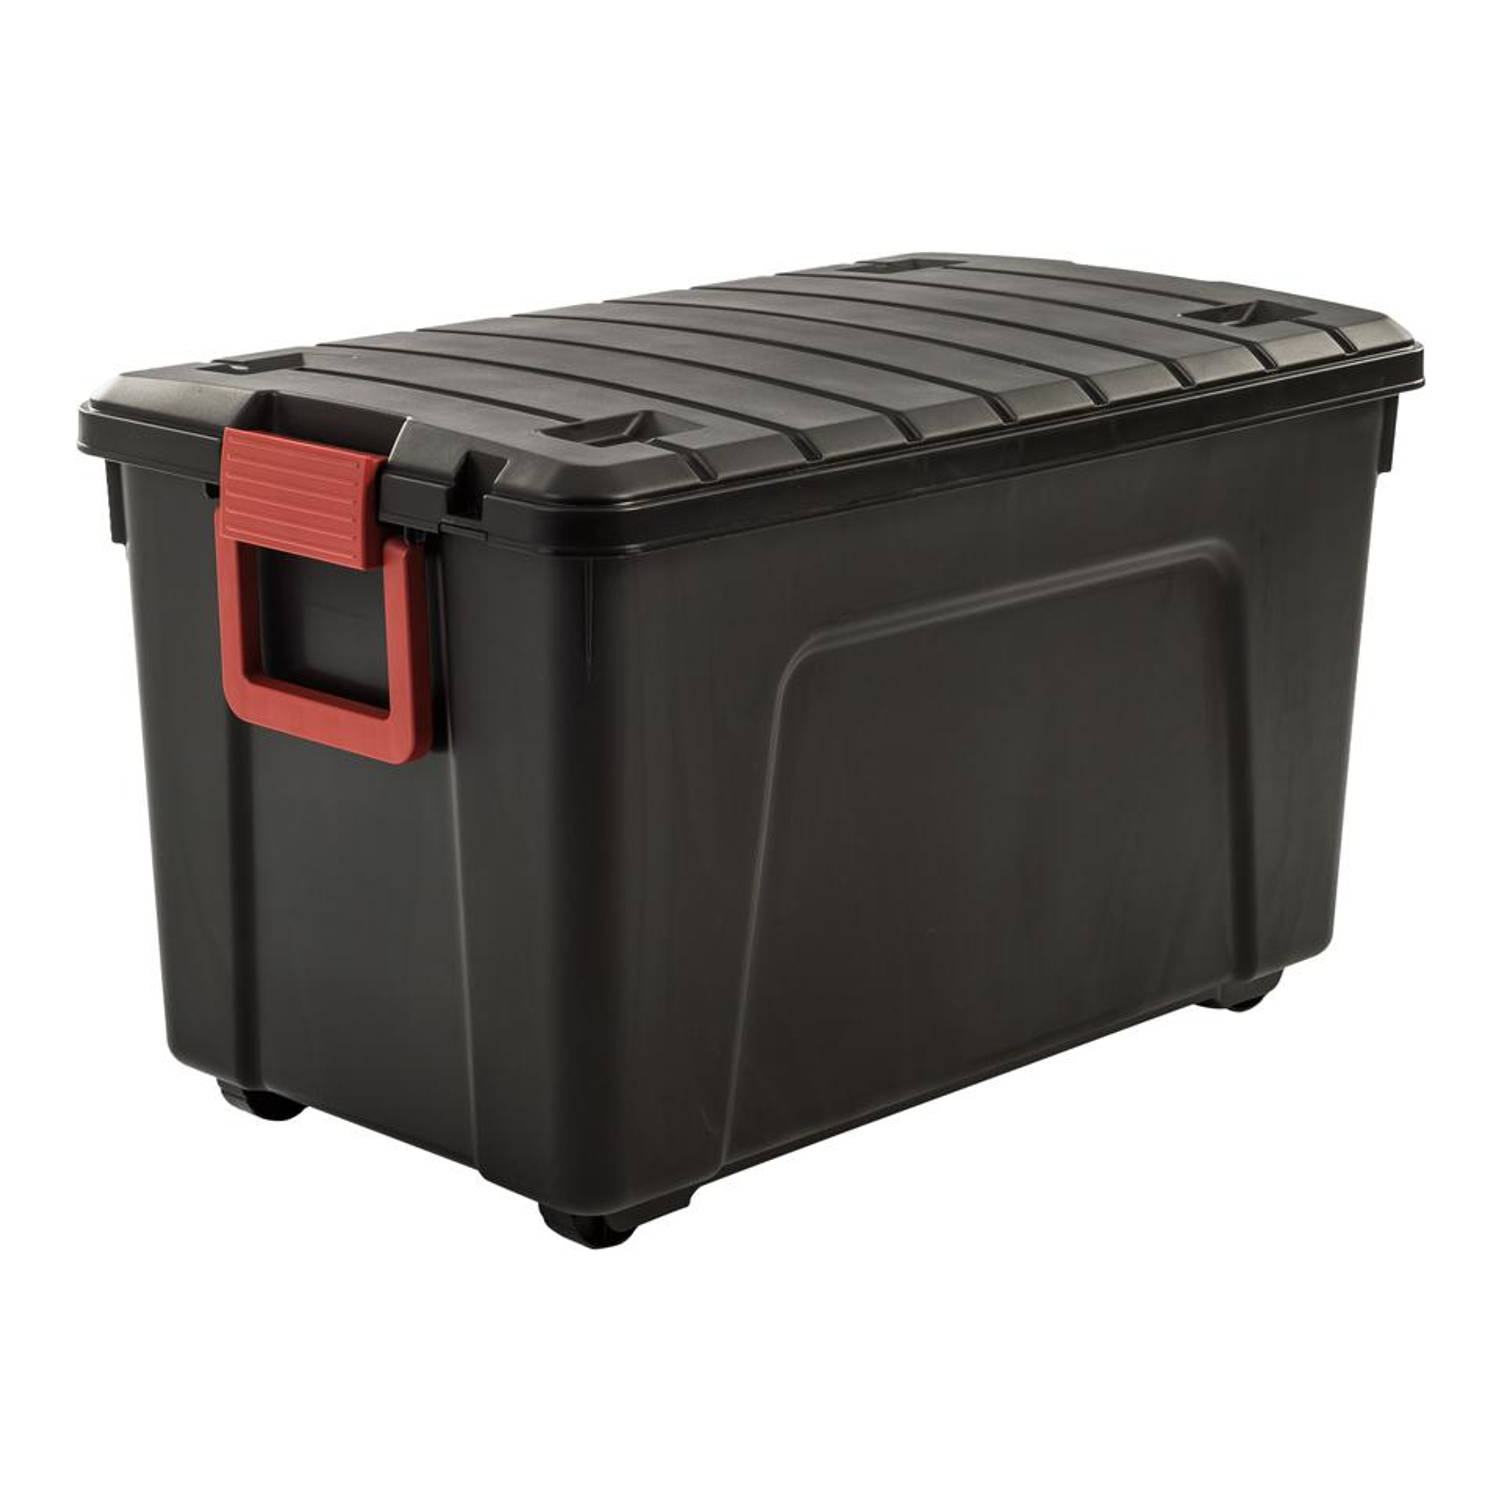 Iris Store It All opbergbox - 75 liter - zwart rood